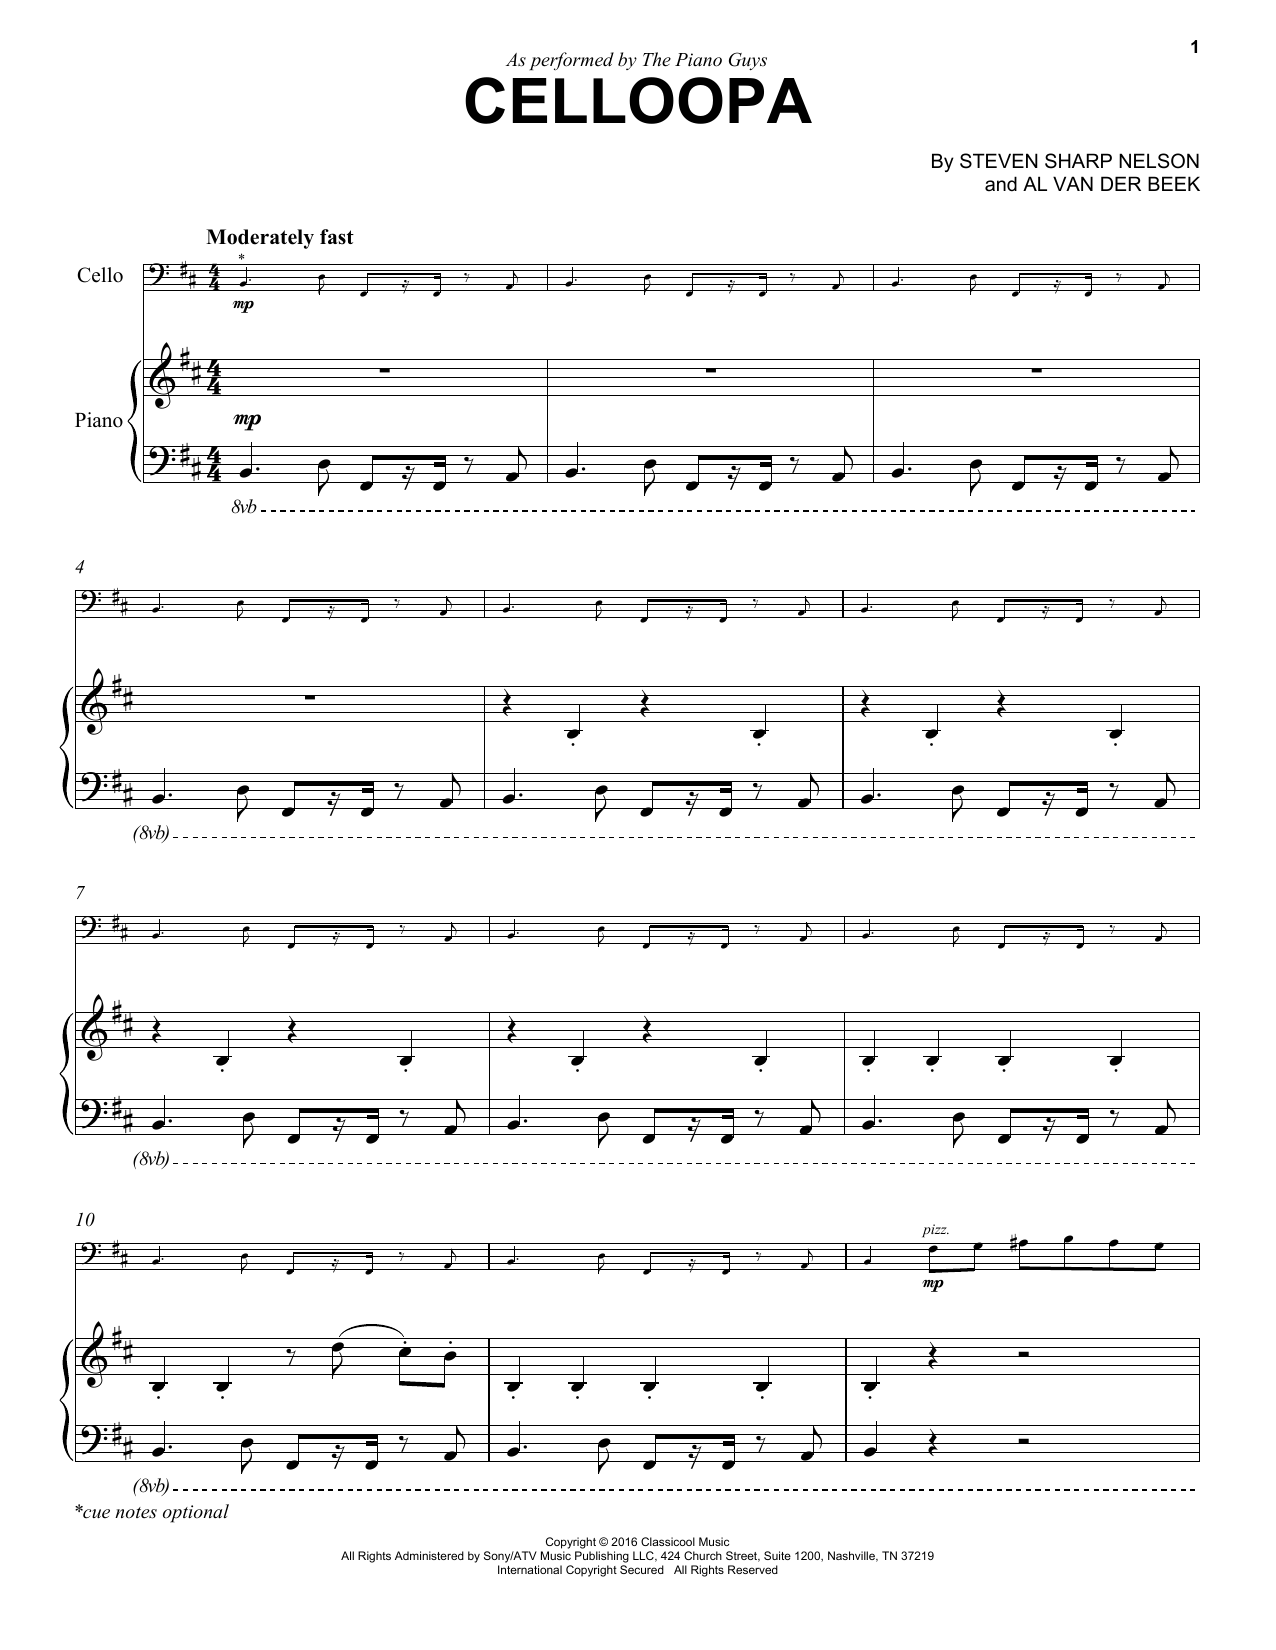 Download The Piano Guys 'Celloopa' Digital Sheet Music Notes & Chords and start playing in minutes